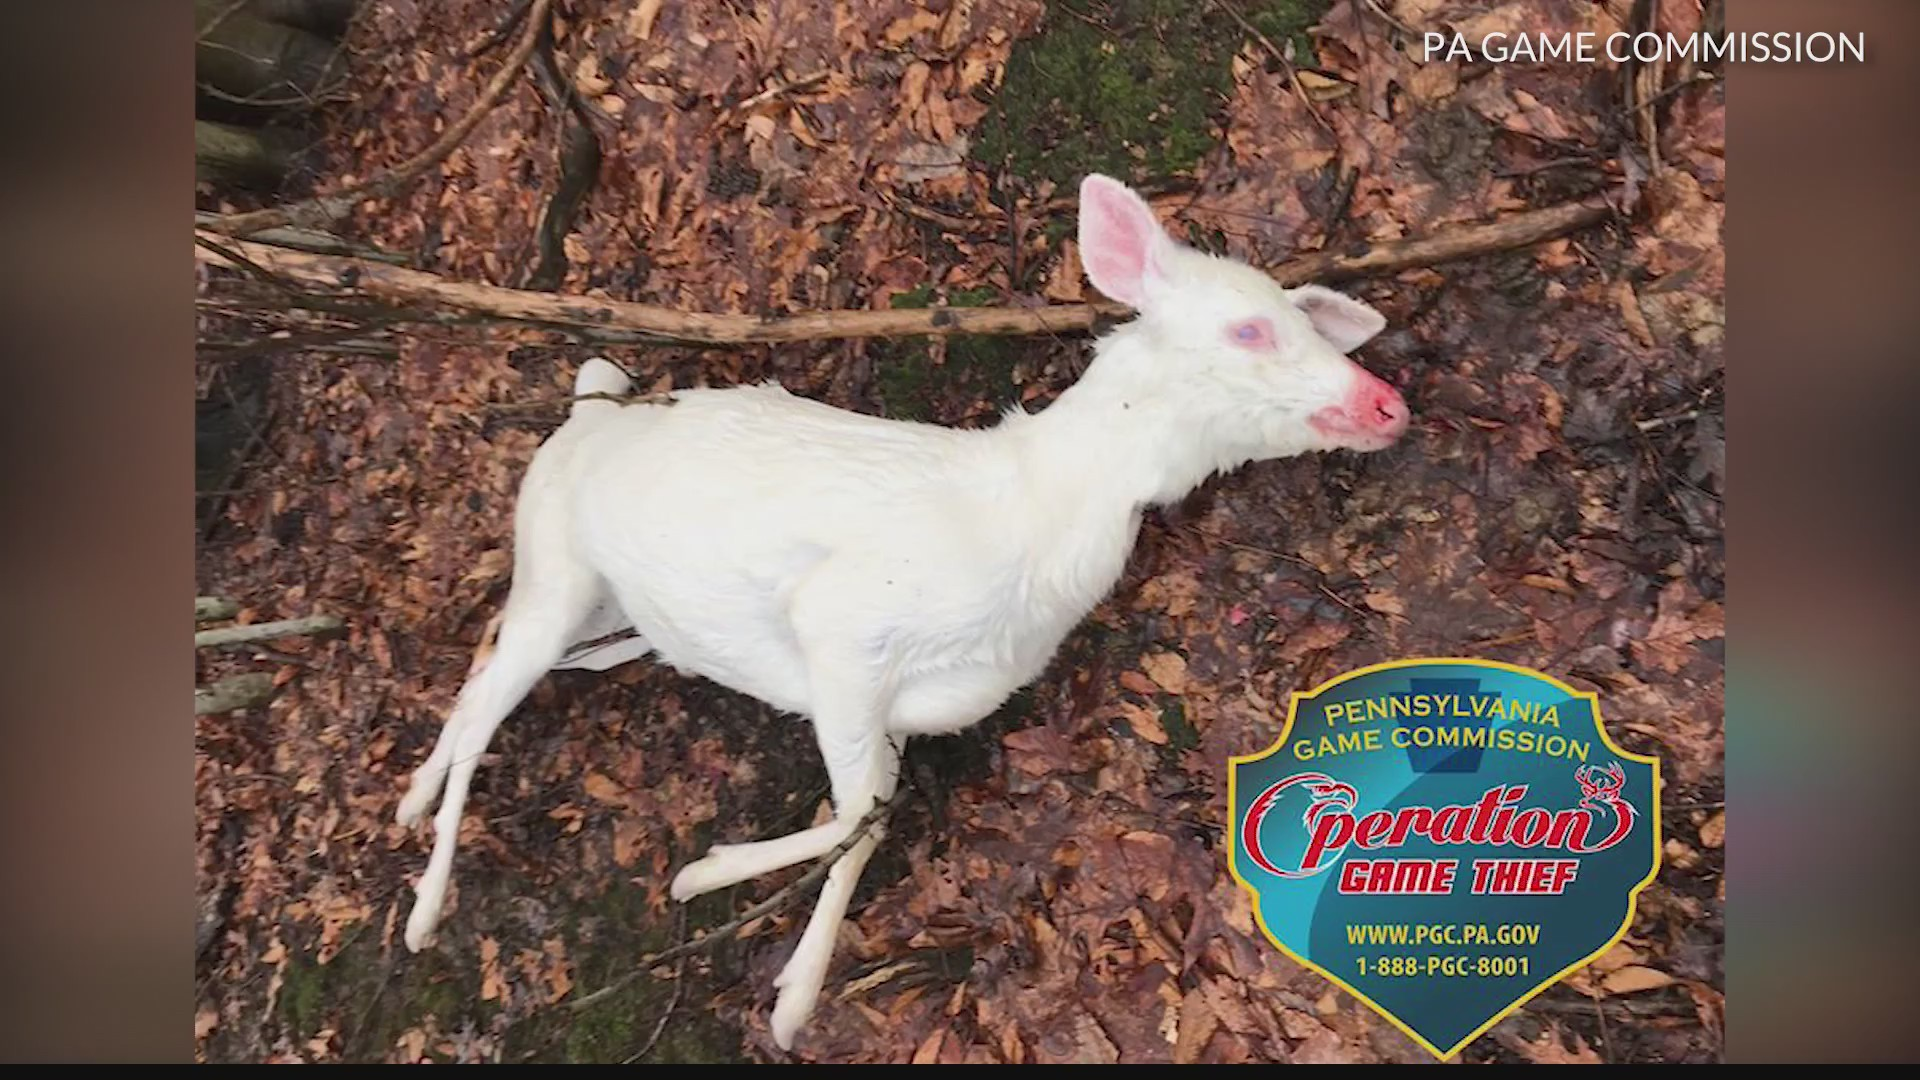 Officials offering $1,500 reward for info on albino deer killed